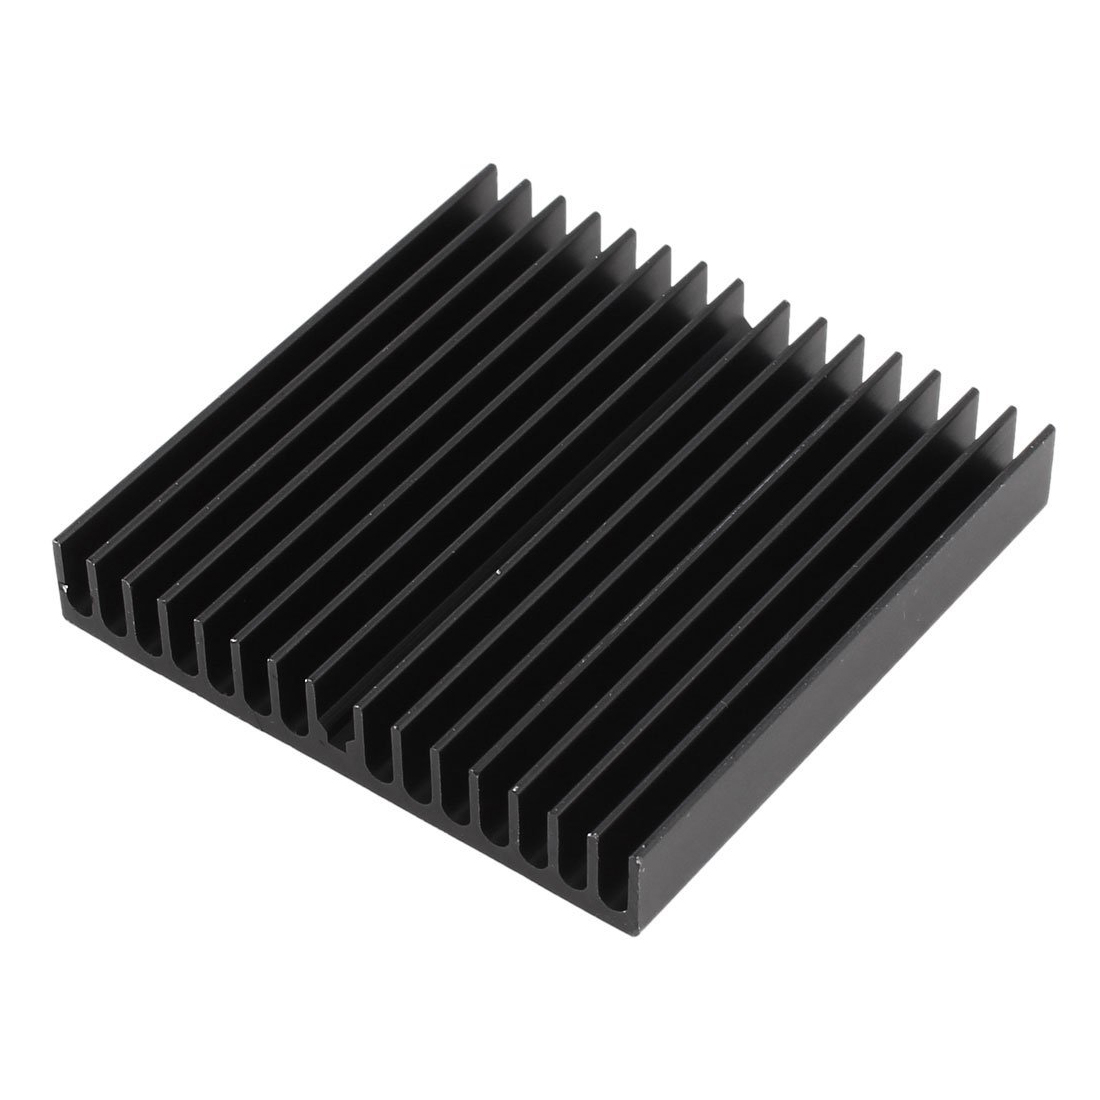 1 pcs Aluminum Radiator Heat Sink Heatsink 60mm x 60mm x 10mm Black free shipping 20pcs aluminum heat sink 25 x 25 x 10mm electrical accessories